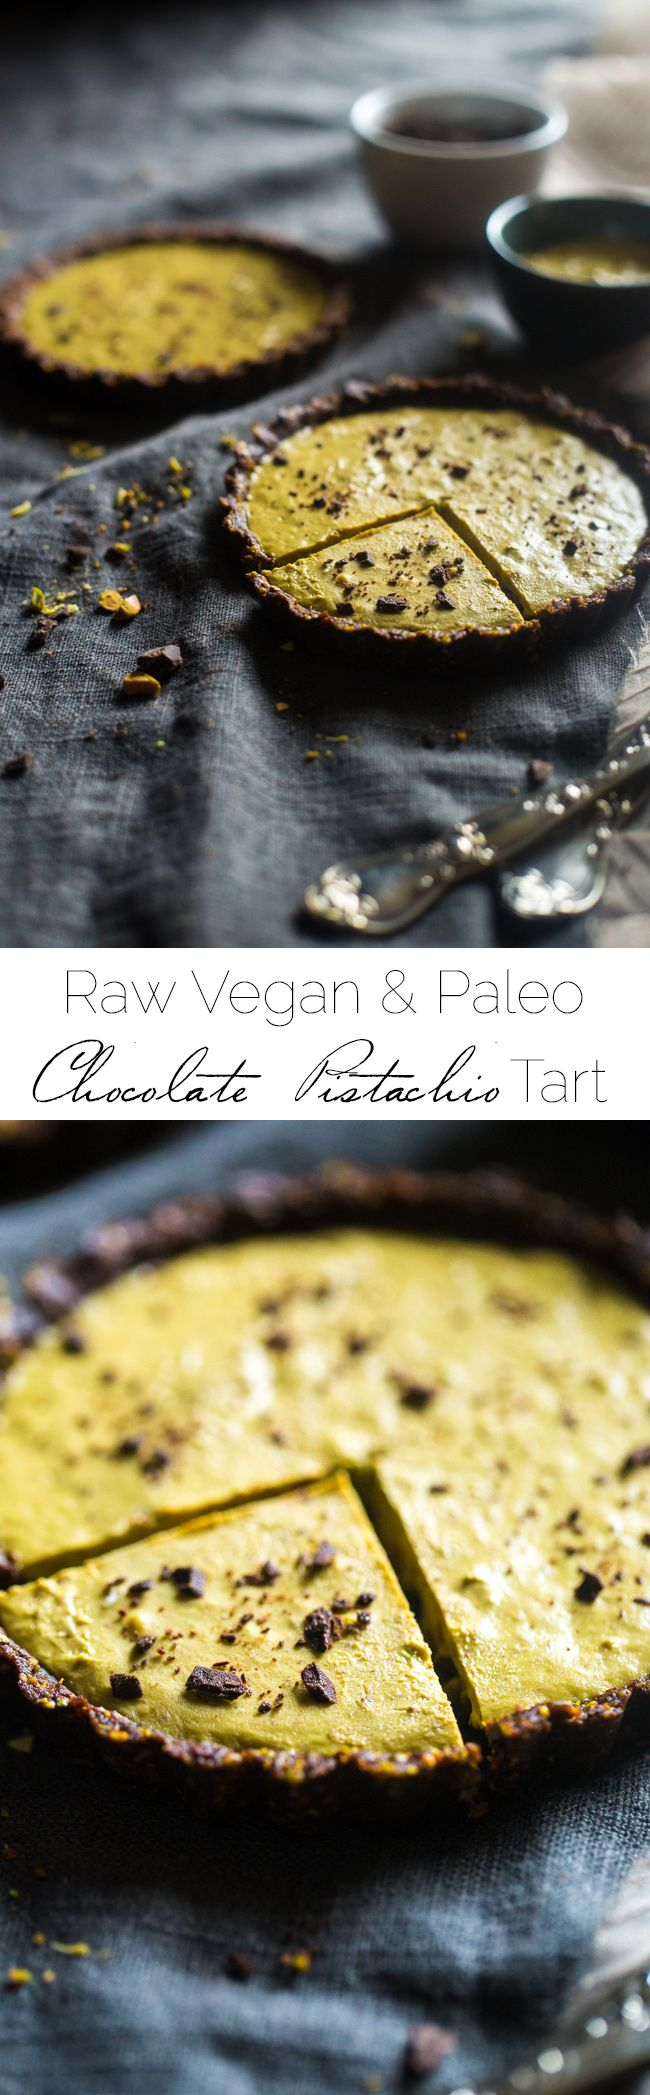 6 Ingredient Paleo and Vegan Raw Chocolate Pistachoo Tarts - This vegan tart is made with only 6 ingredients! It's a healthy gluten free and paleo dessert that is easy to make! Perfect for Christmas! |  |